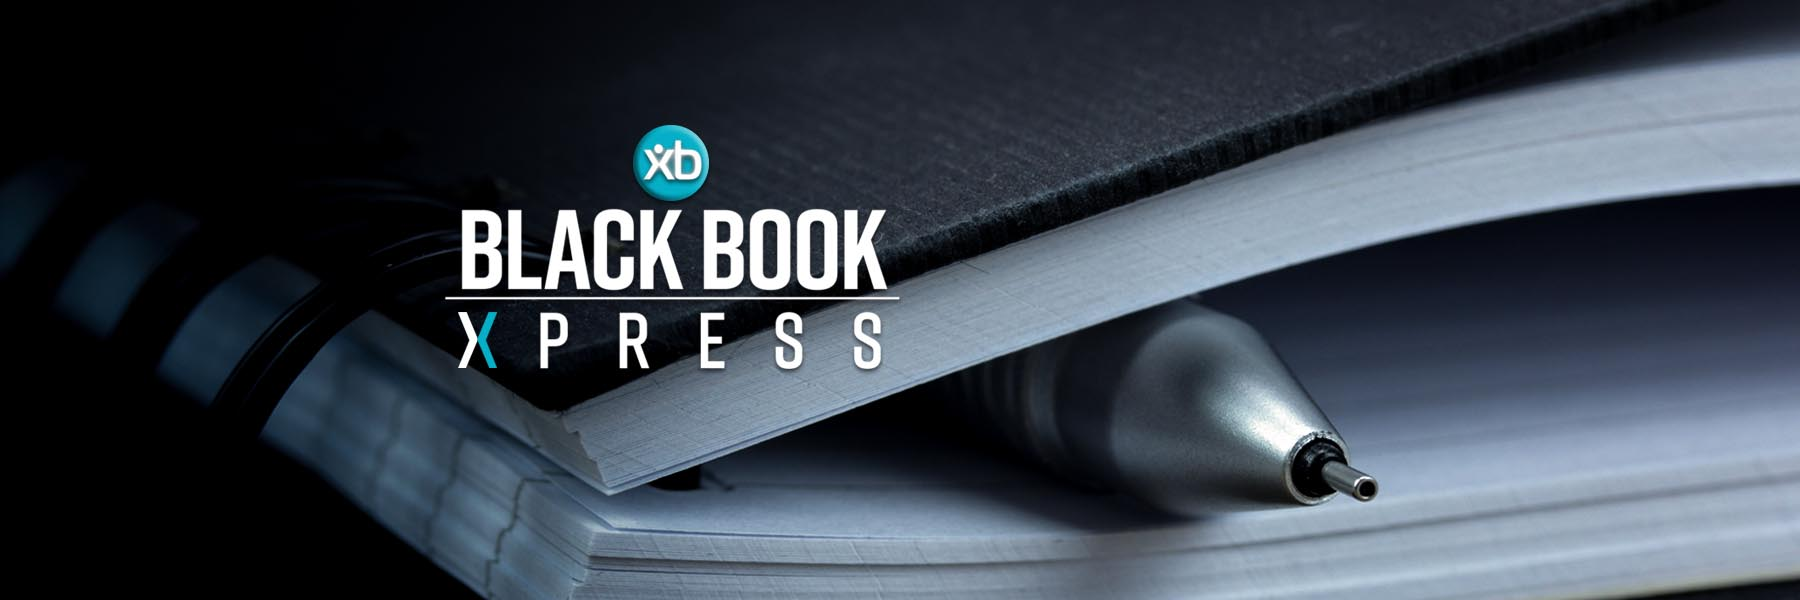 Jeff Siegel's Blog: Black Book Xpress (February 28, 2019)